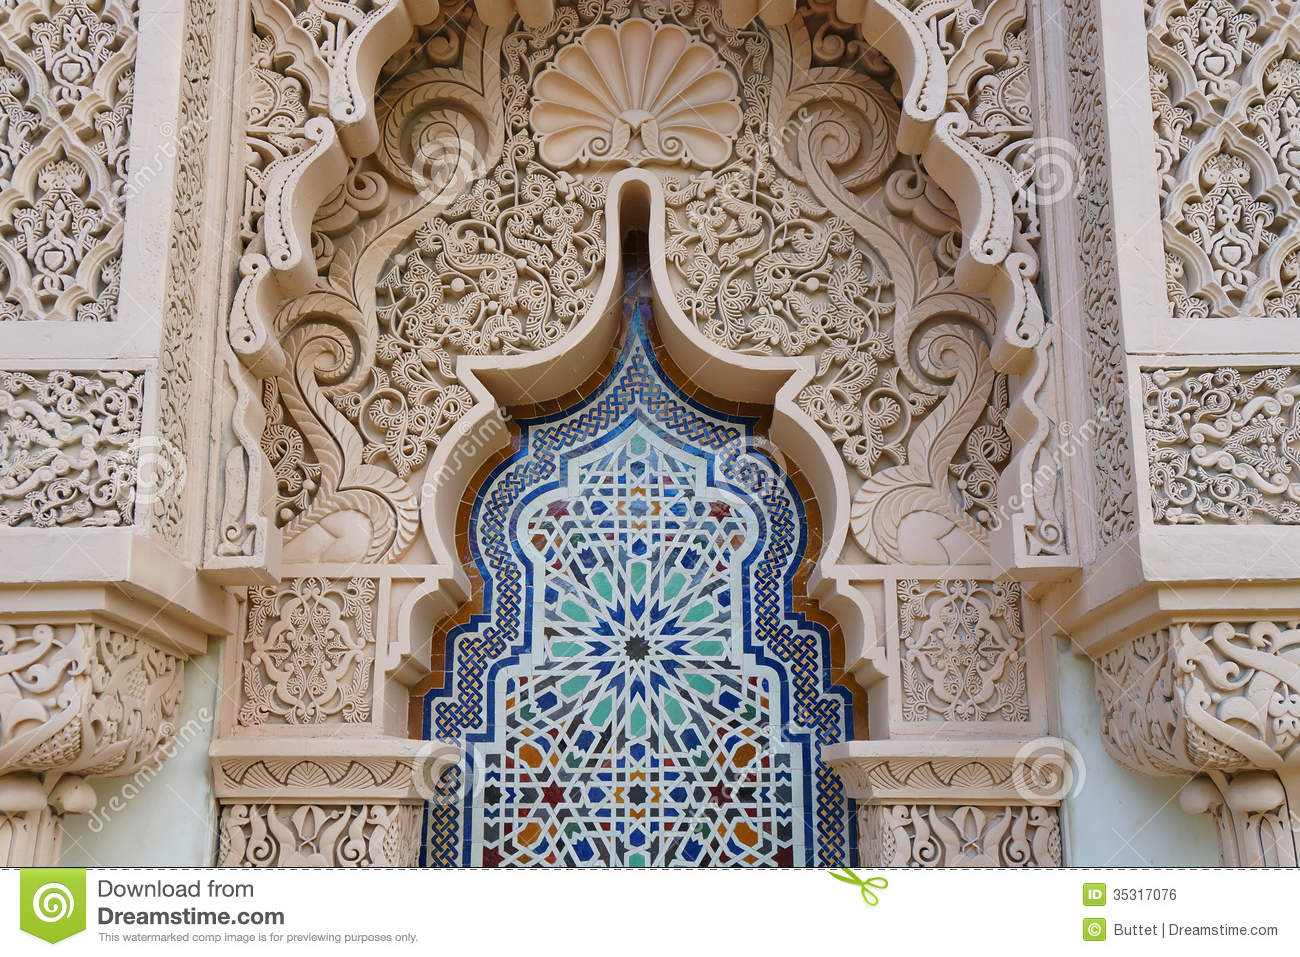 16 Moroccan Graphic Design Images  Moroccan Print Designs Moroccan Tiles Pattern Design and